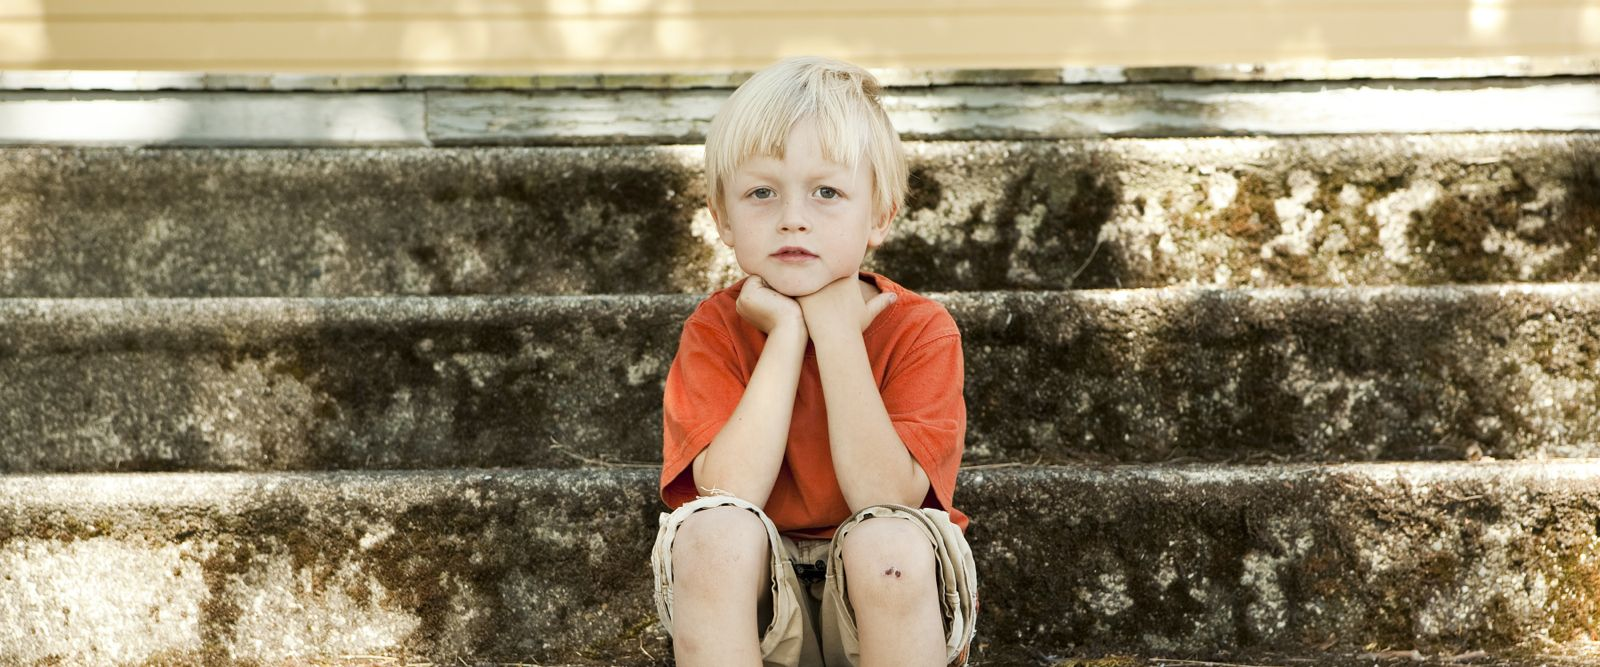 Child on steps